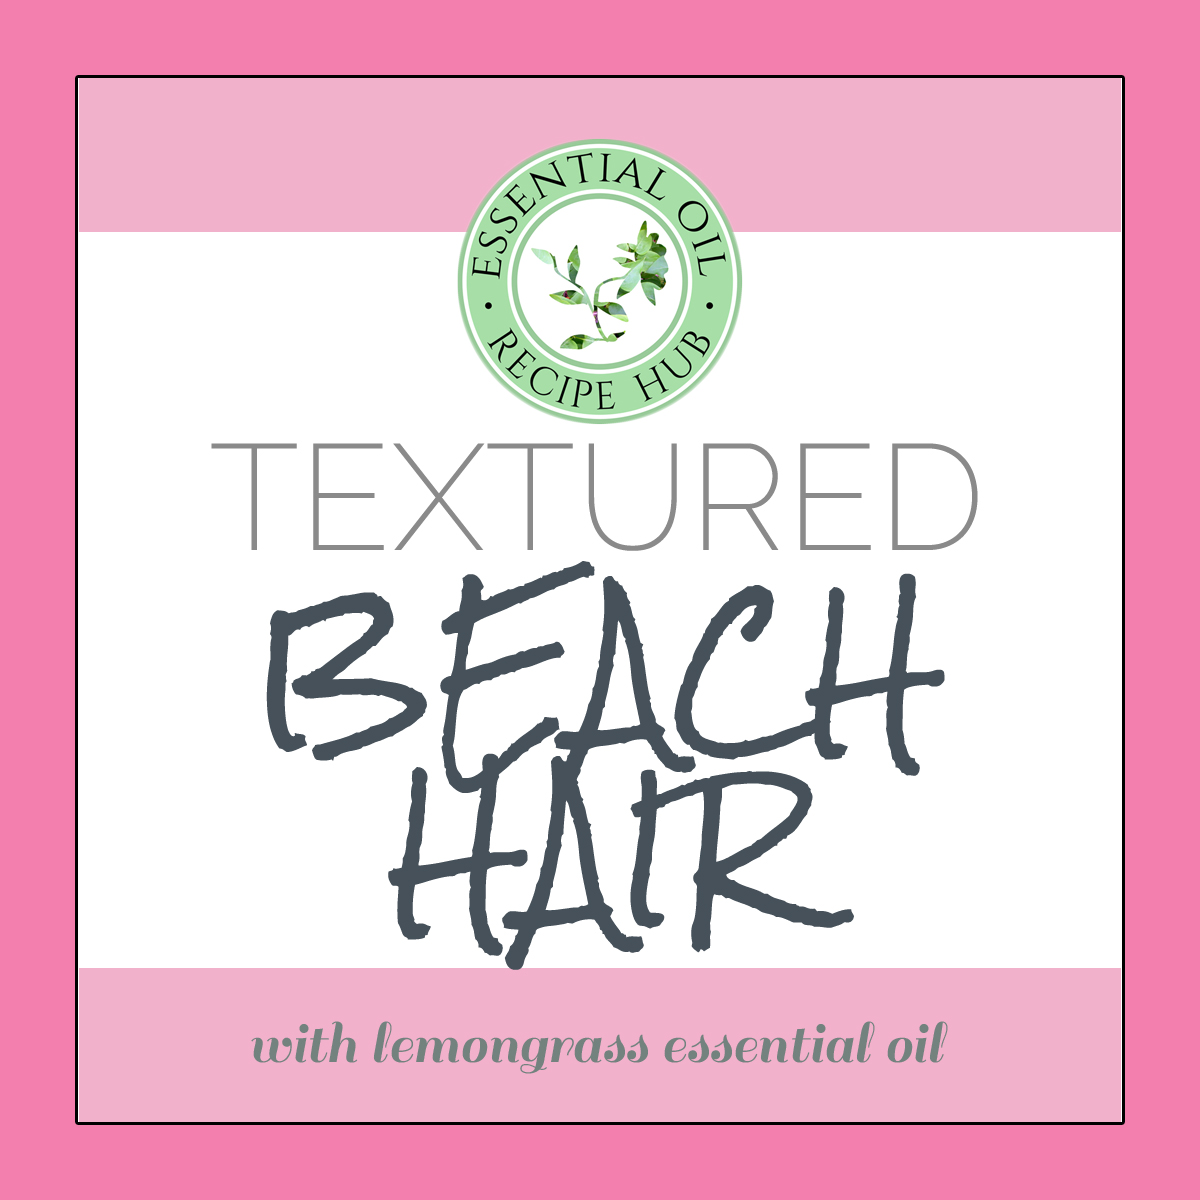 textured beach hair